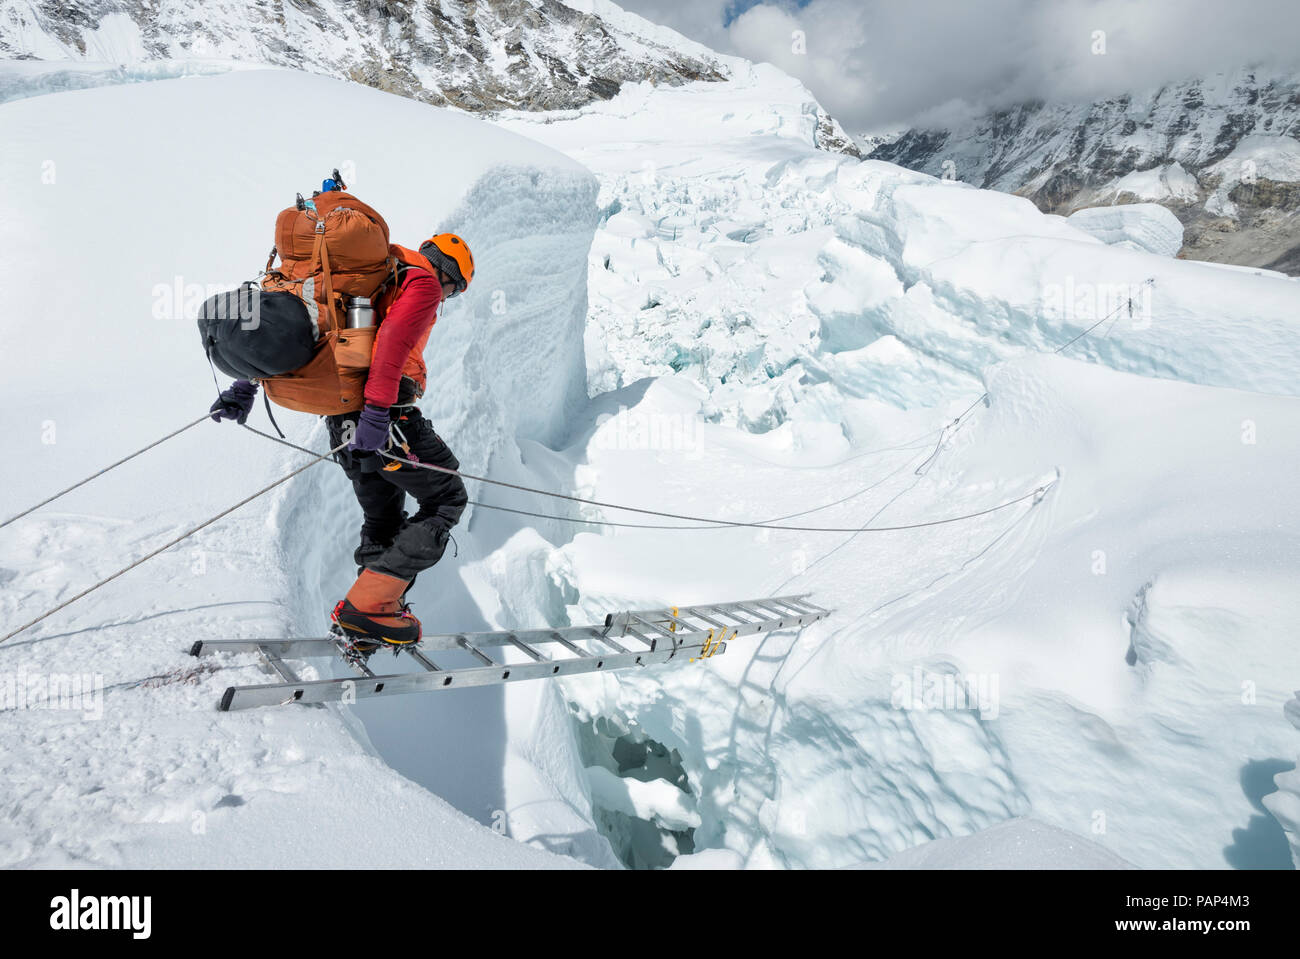 Nepal, Solo Khumbu, Everest, Sagamartha National Park, Mountaineer crossing icefall at Western Cwm - Stock Image